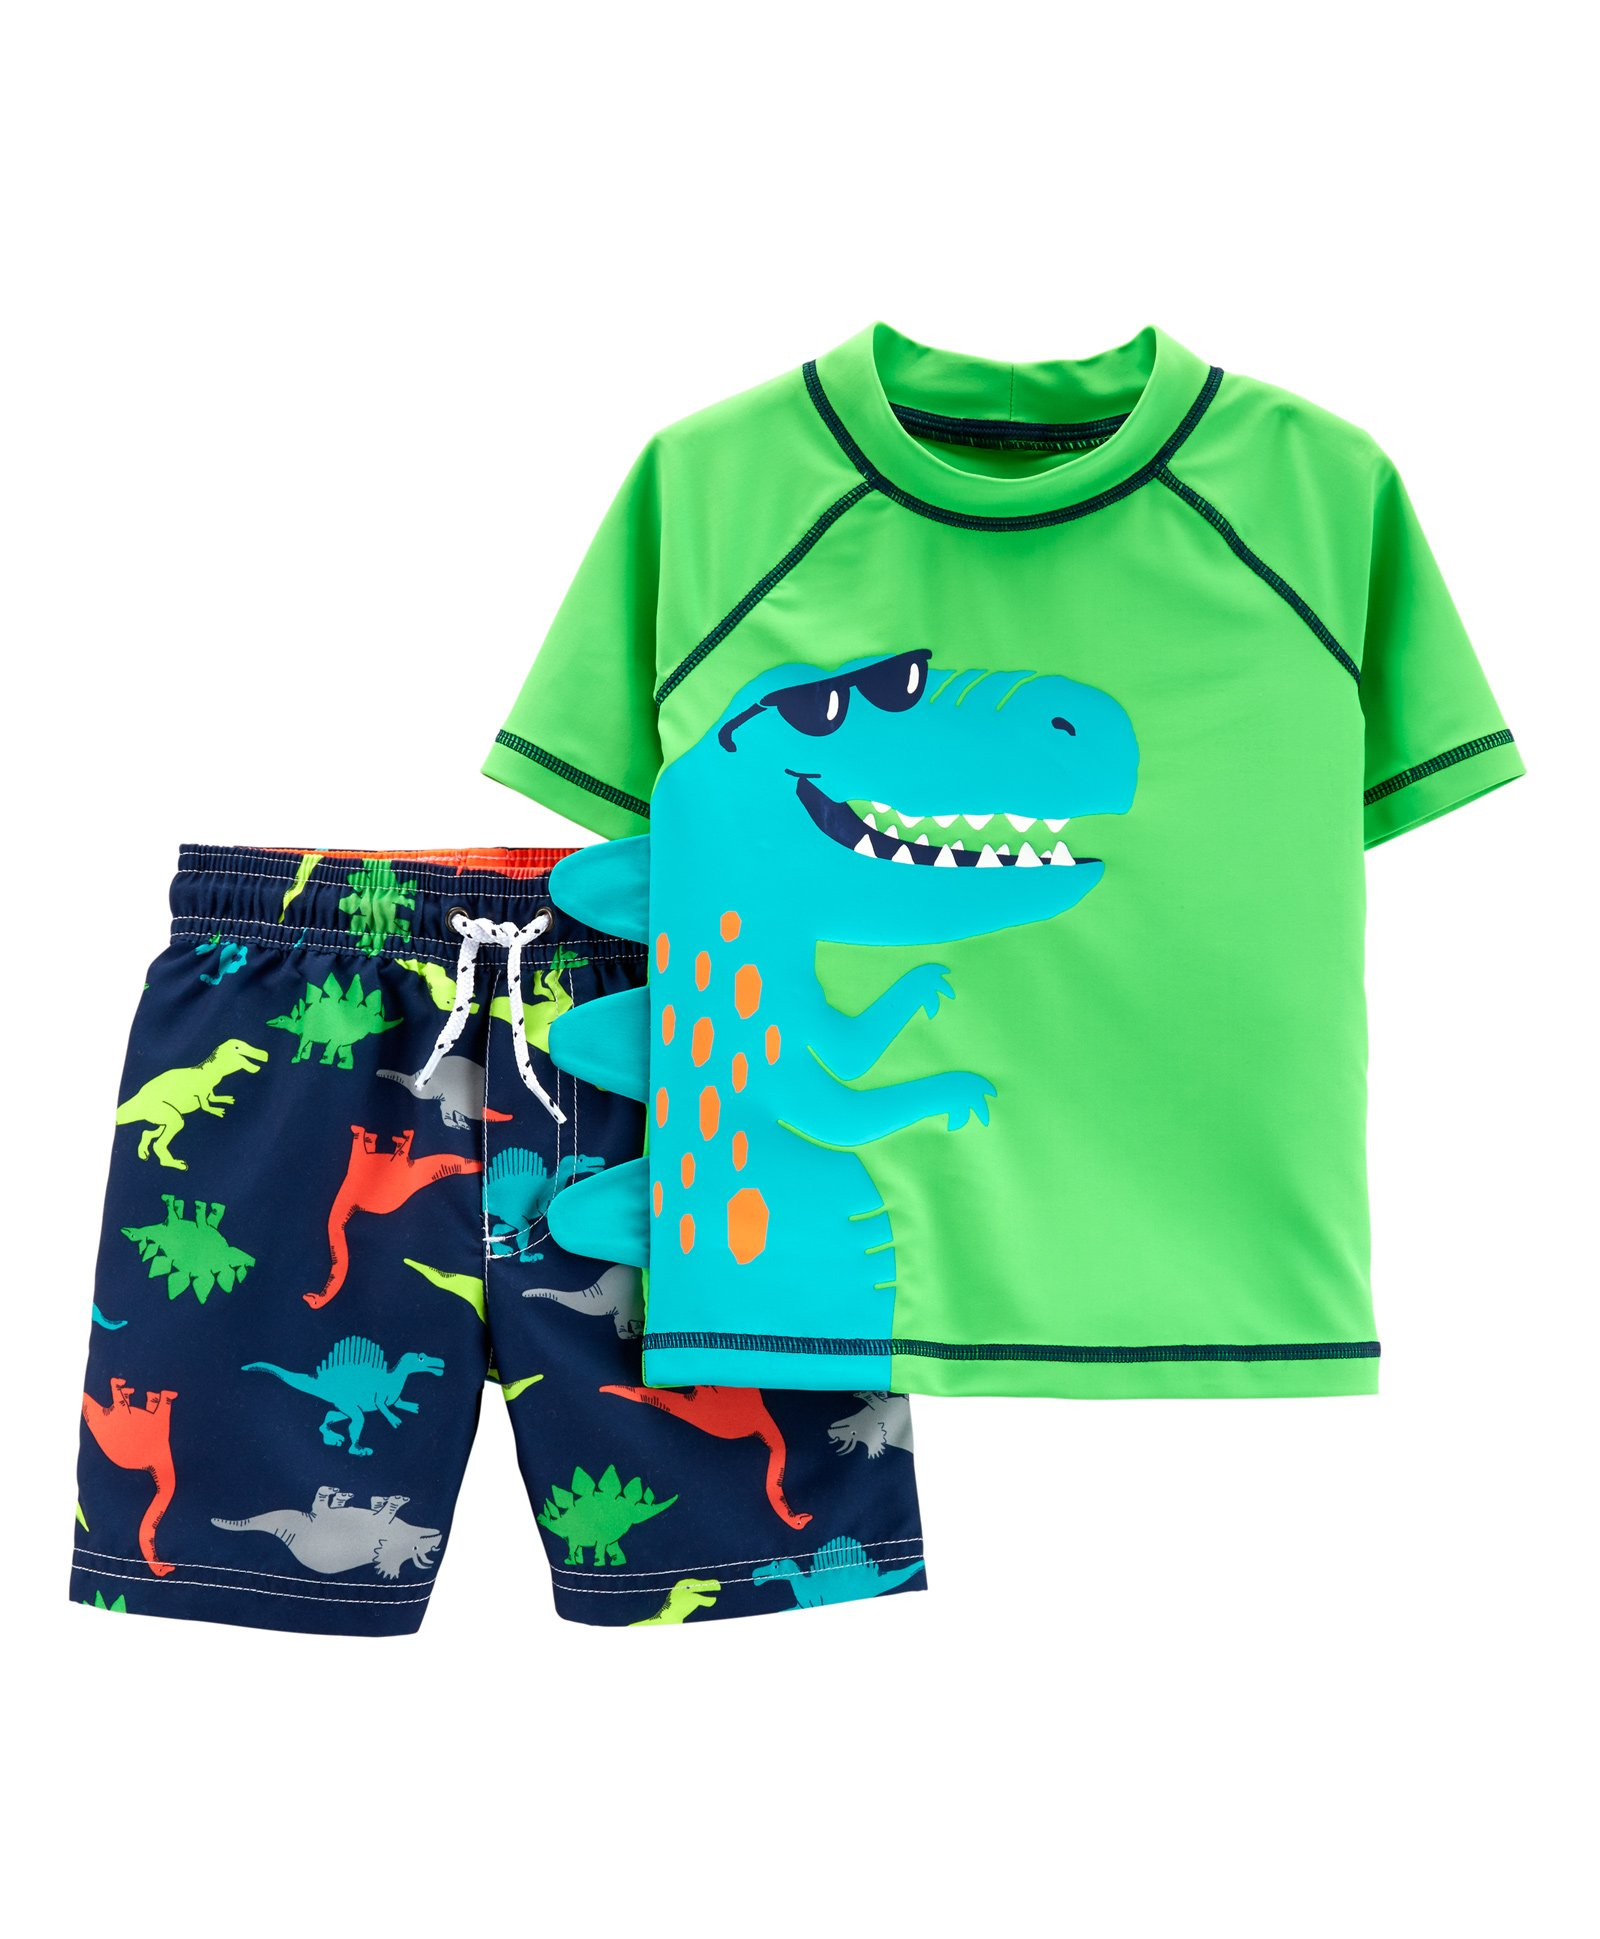 612150e70 Buy Carters 2Piece Dinosaur Rashguard Set Green Navy Blue for Boys